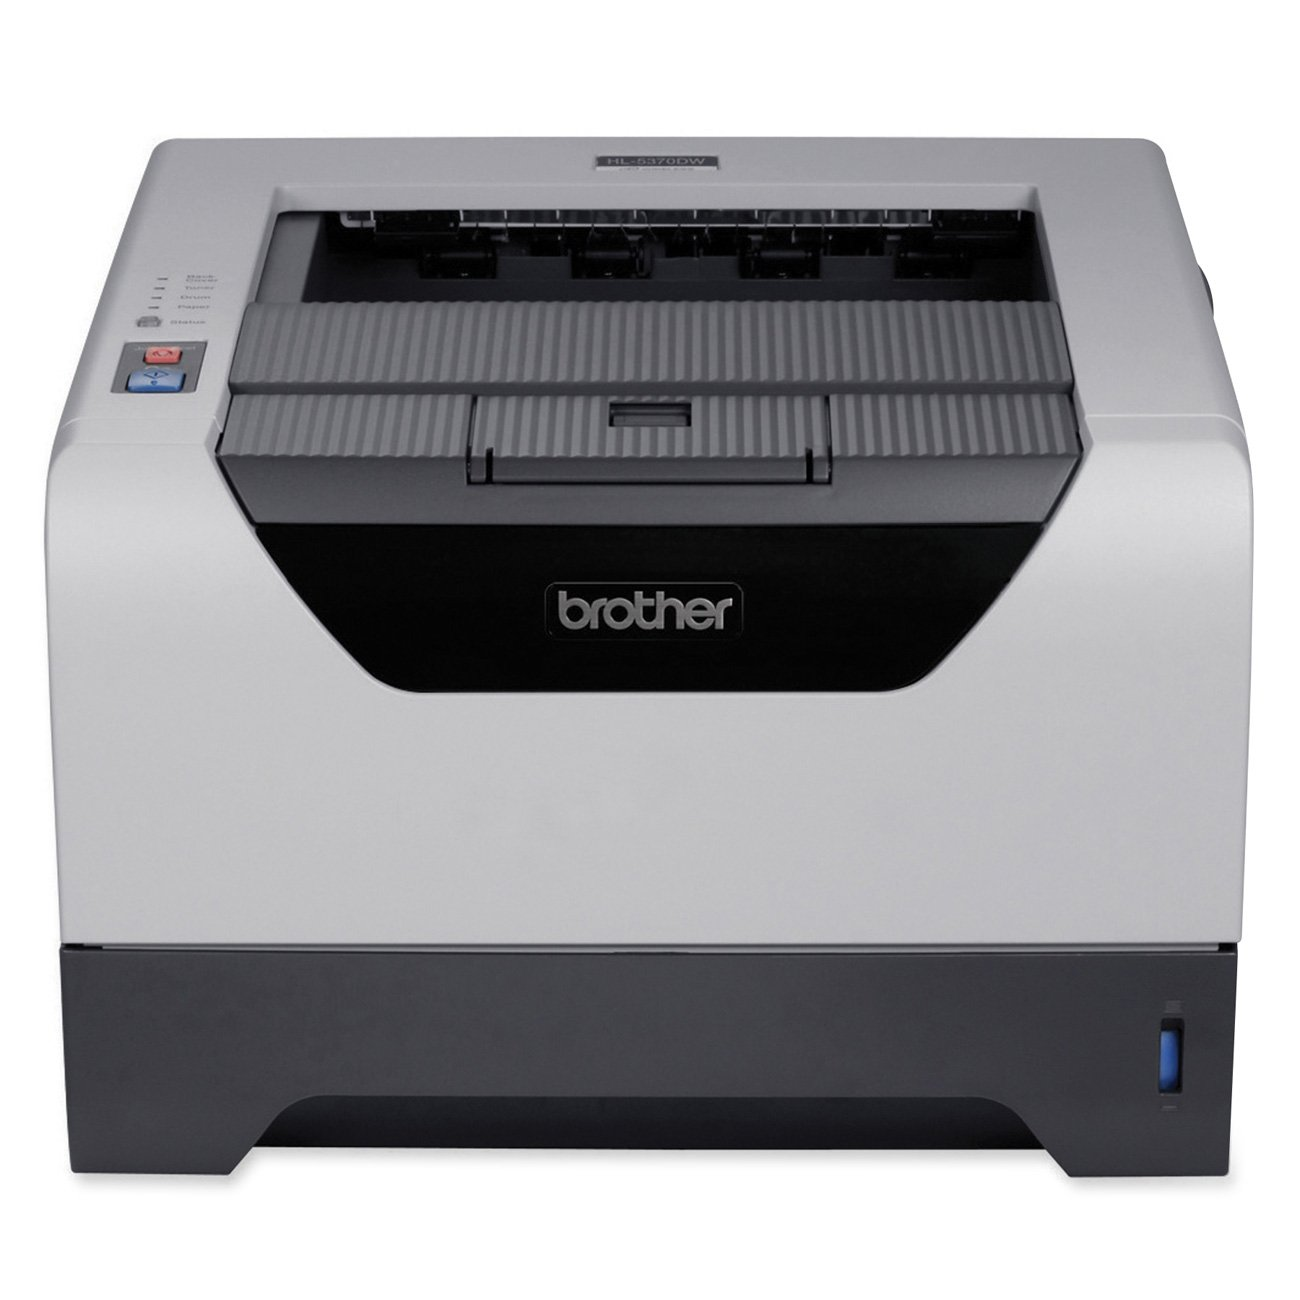 BROTHER HL 5250DN NETWORK DOWNLOAD DRIVERS